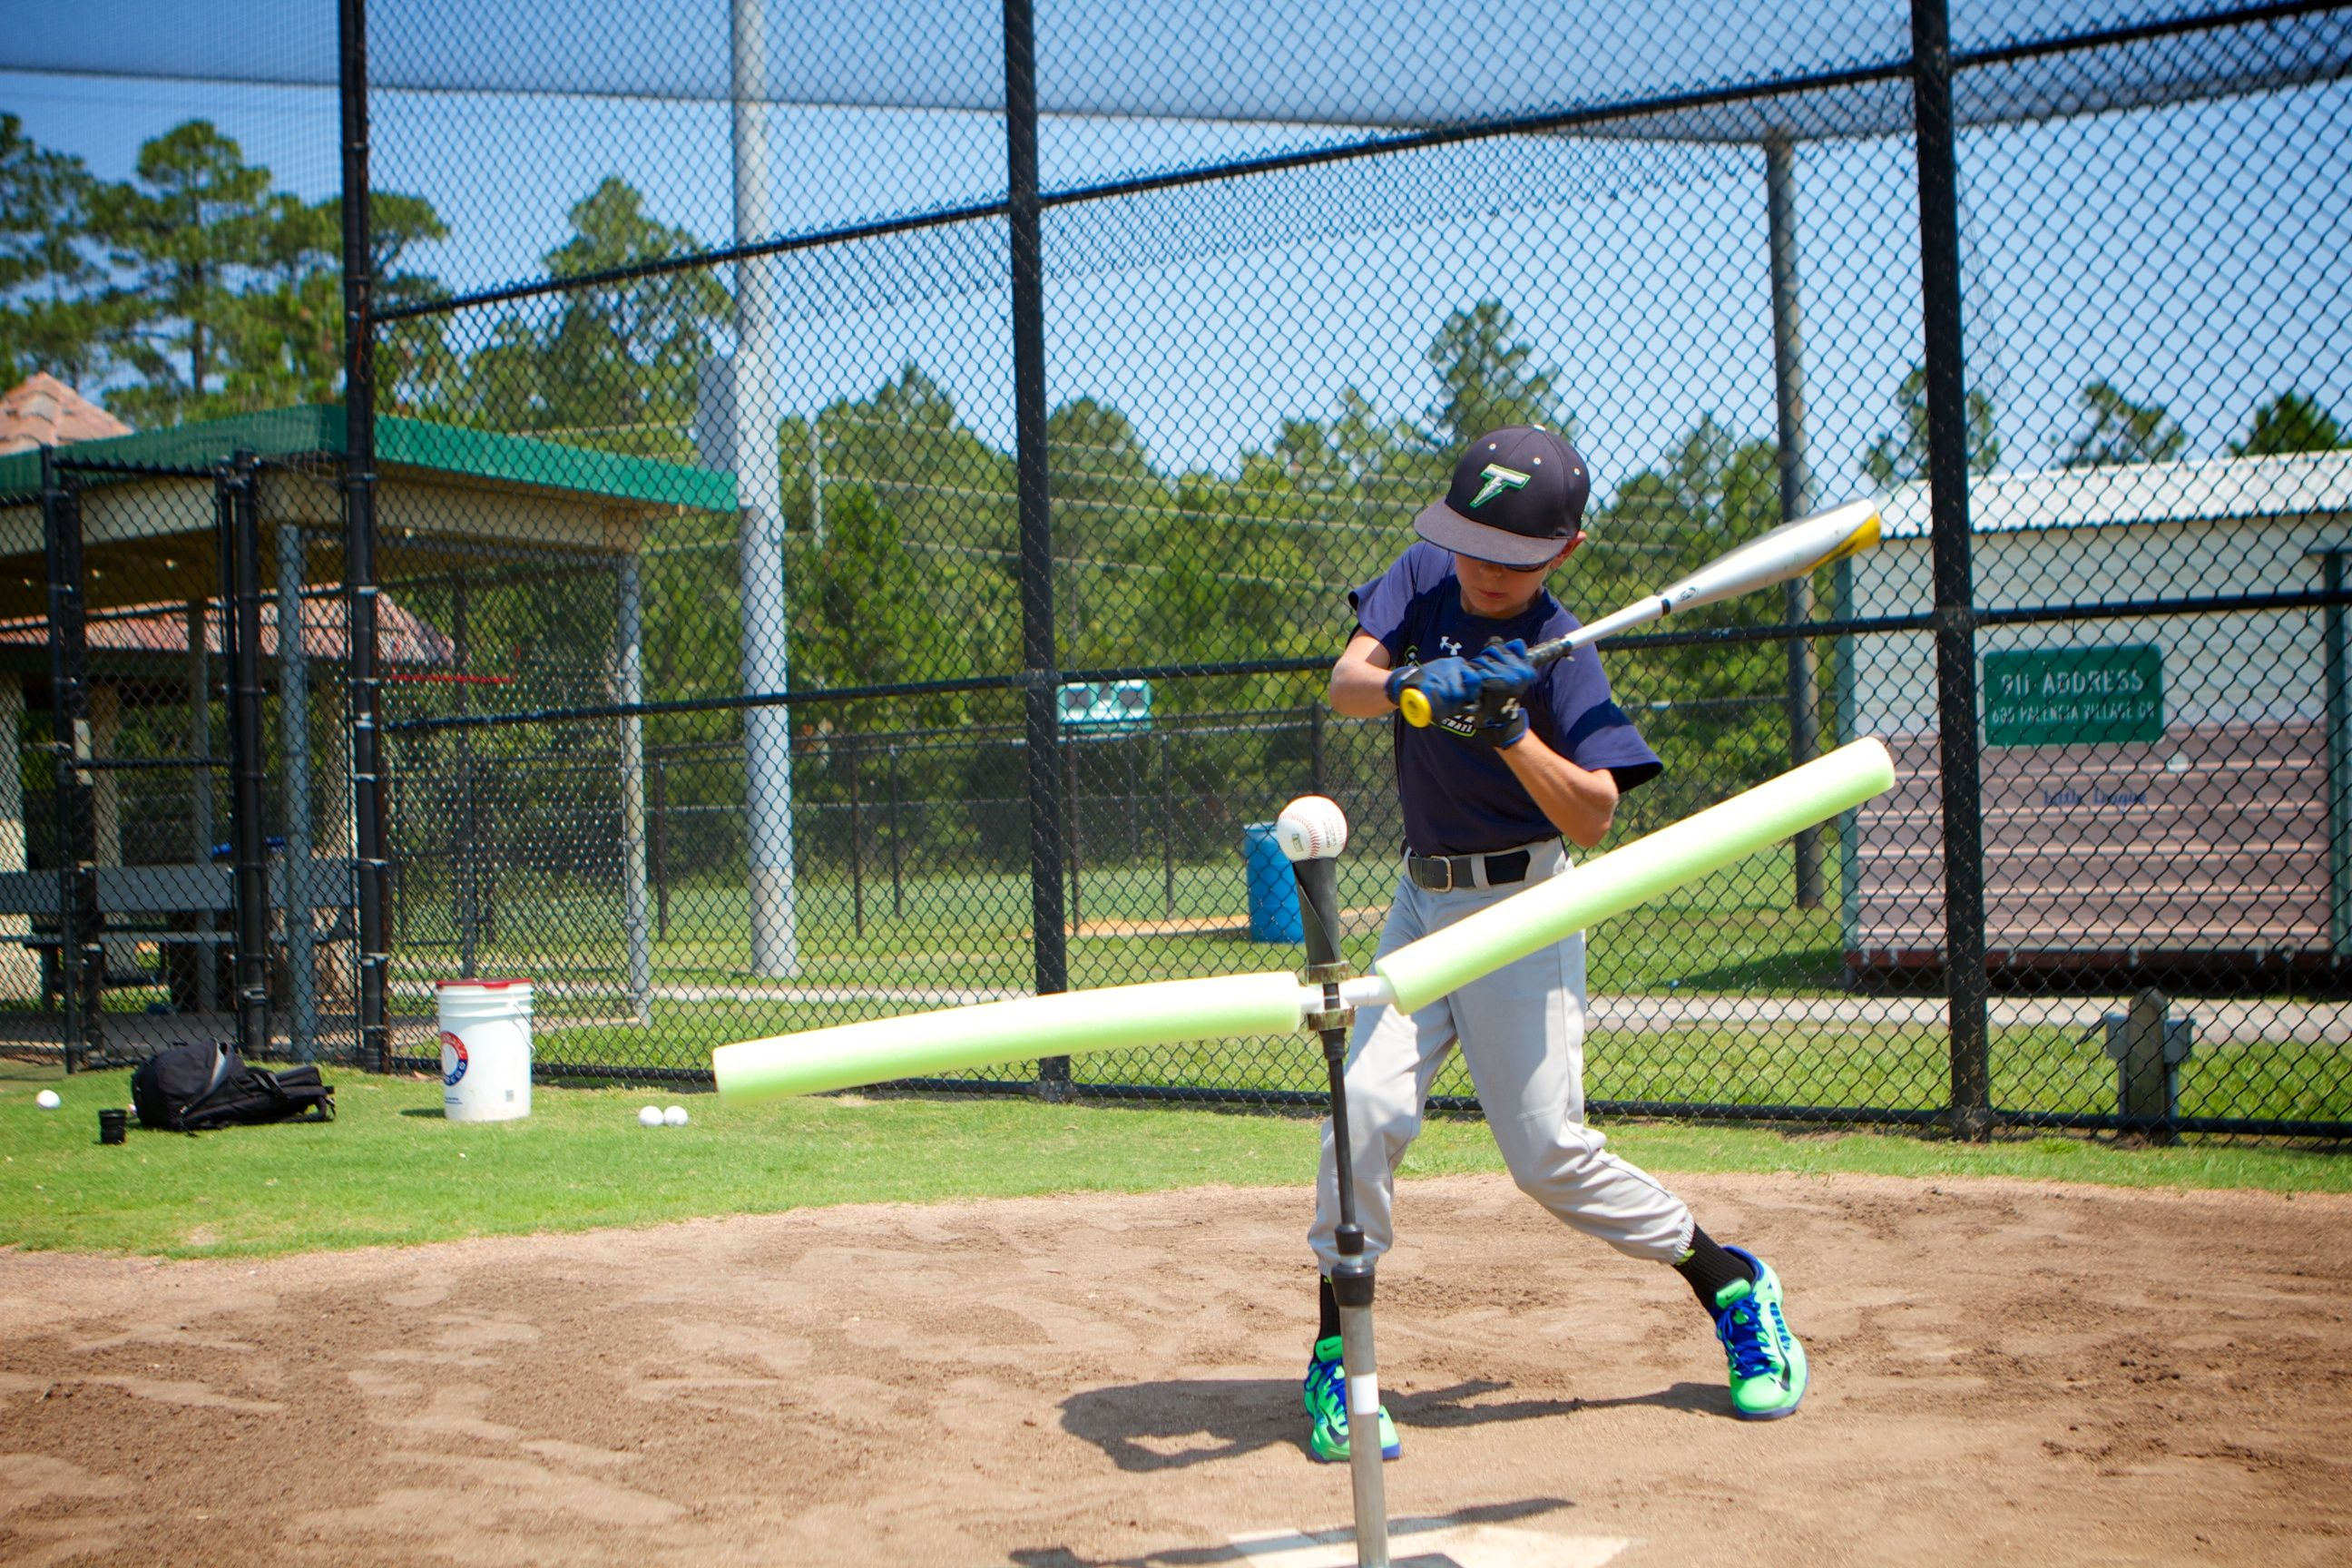 Consistent Contact Keeping The Bat Barrel In The Hitting Zone As Long As Possible Batting Tee Baseball Workouts Baseball Training